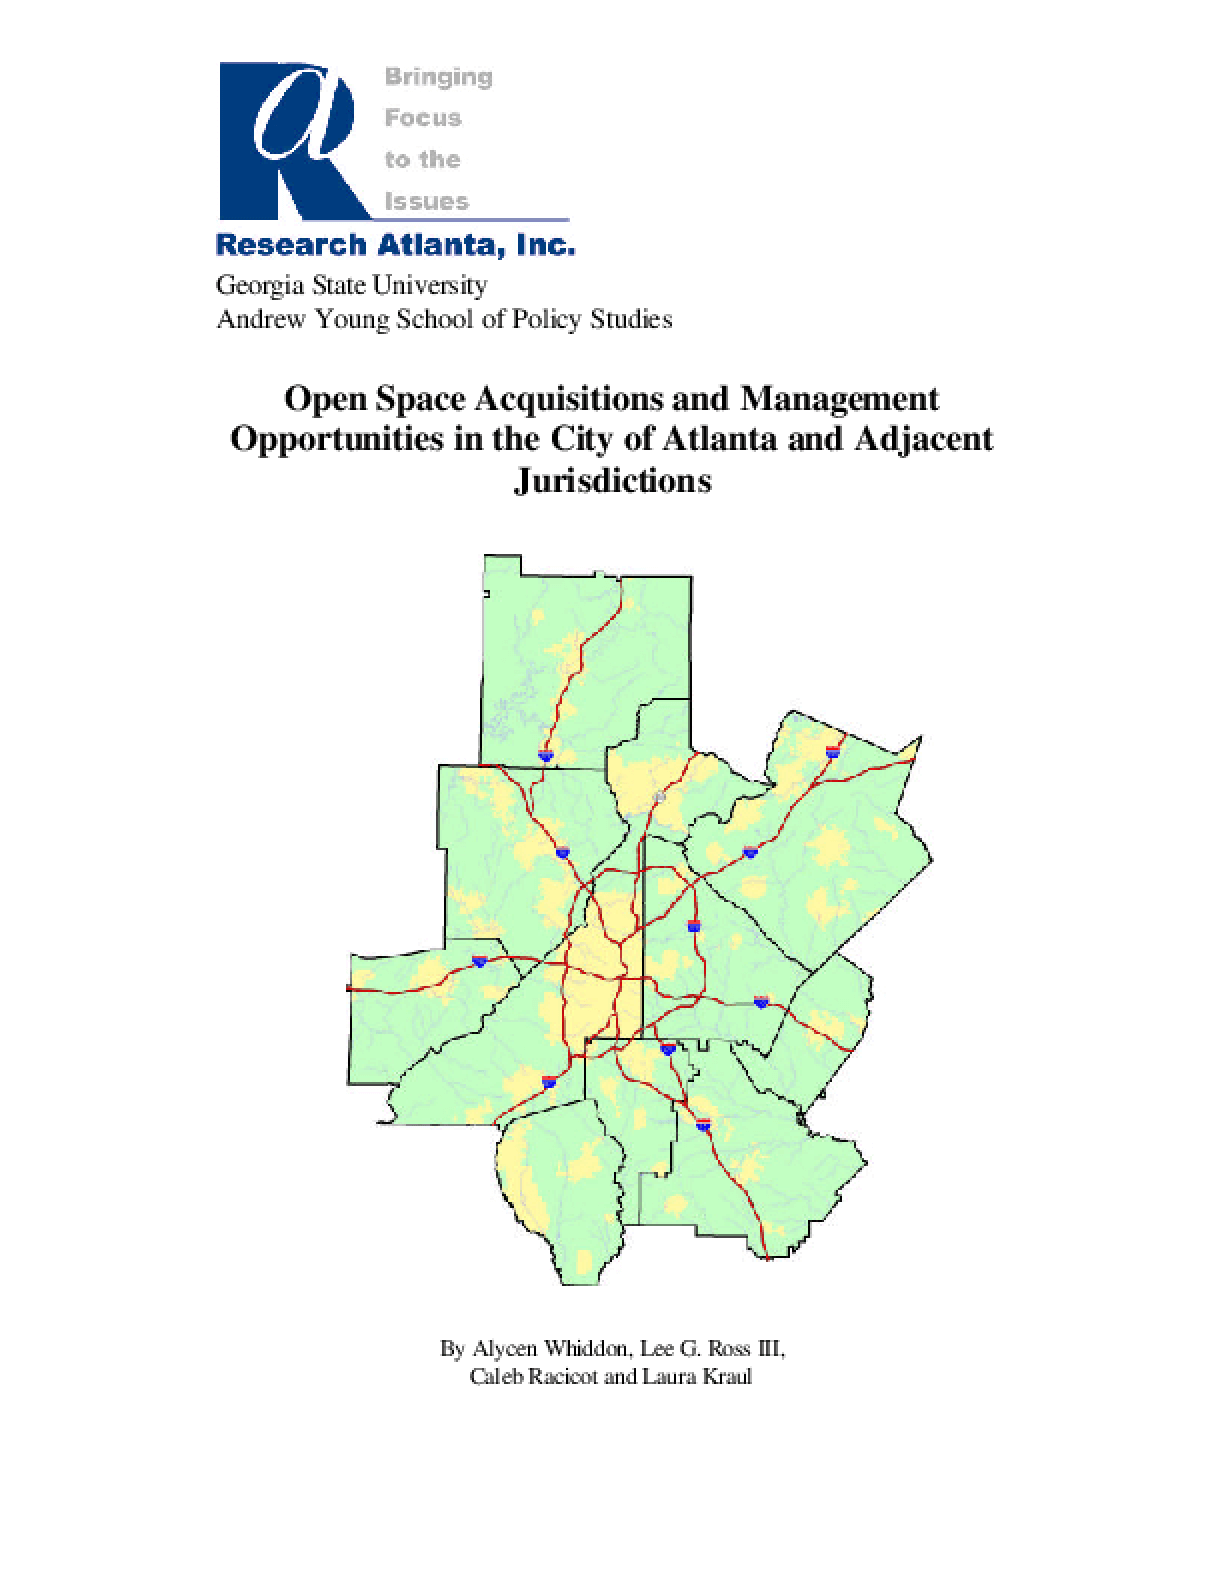 Open Space Acquisitions and Management Opportunities in the City of Atlanta and Adjacent Jurisdictions